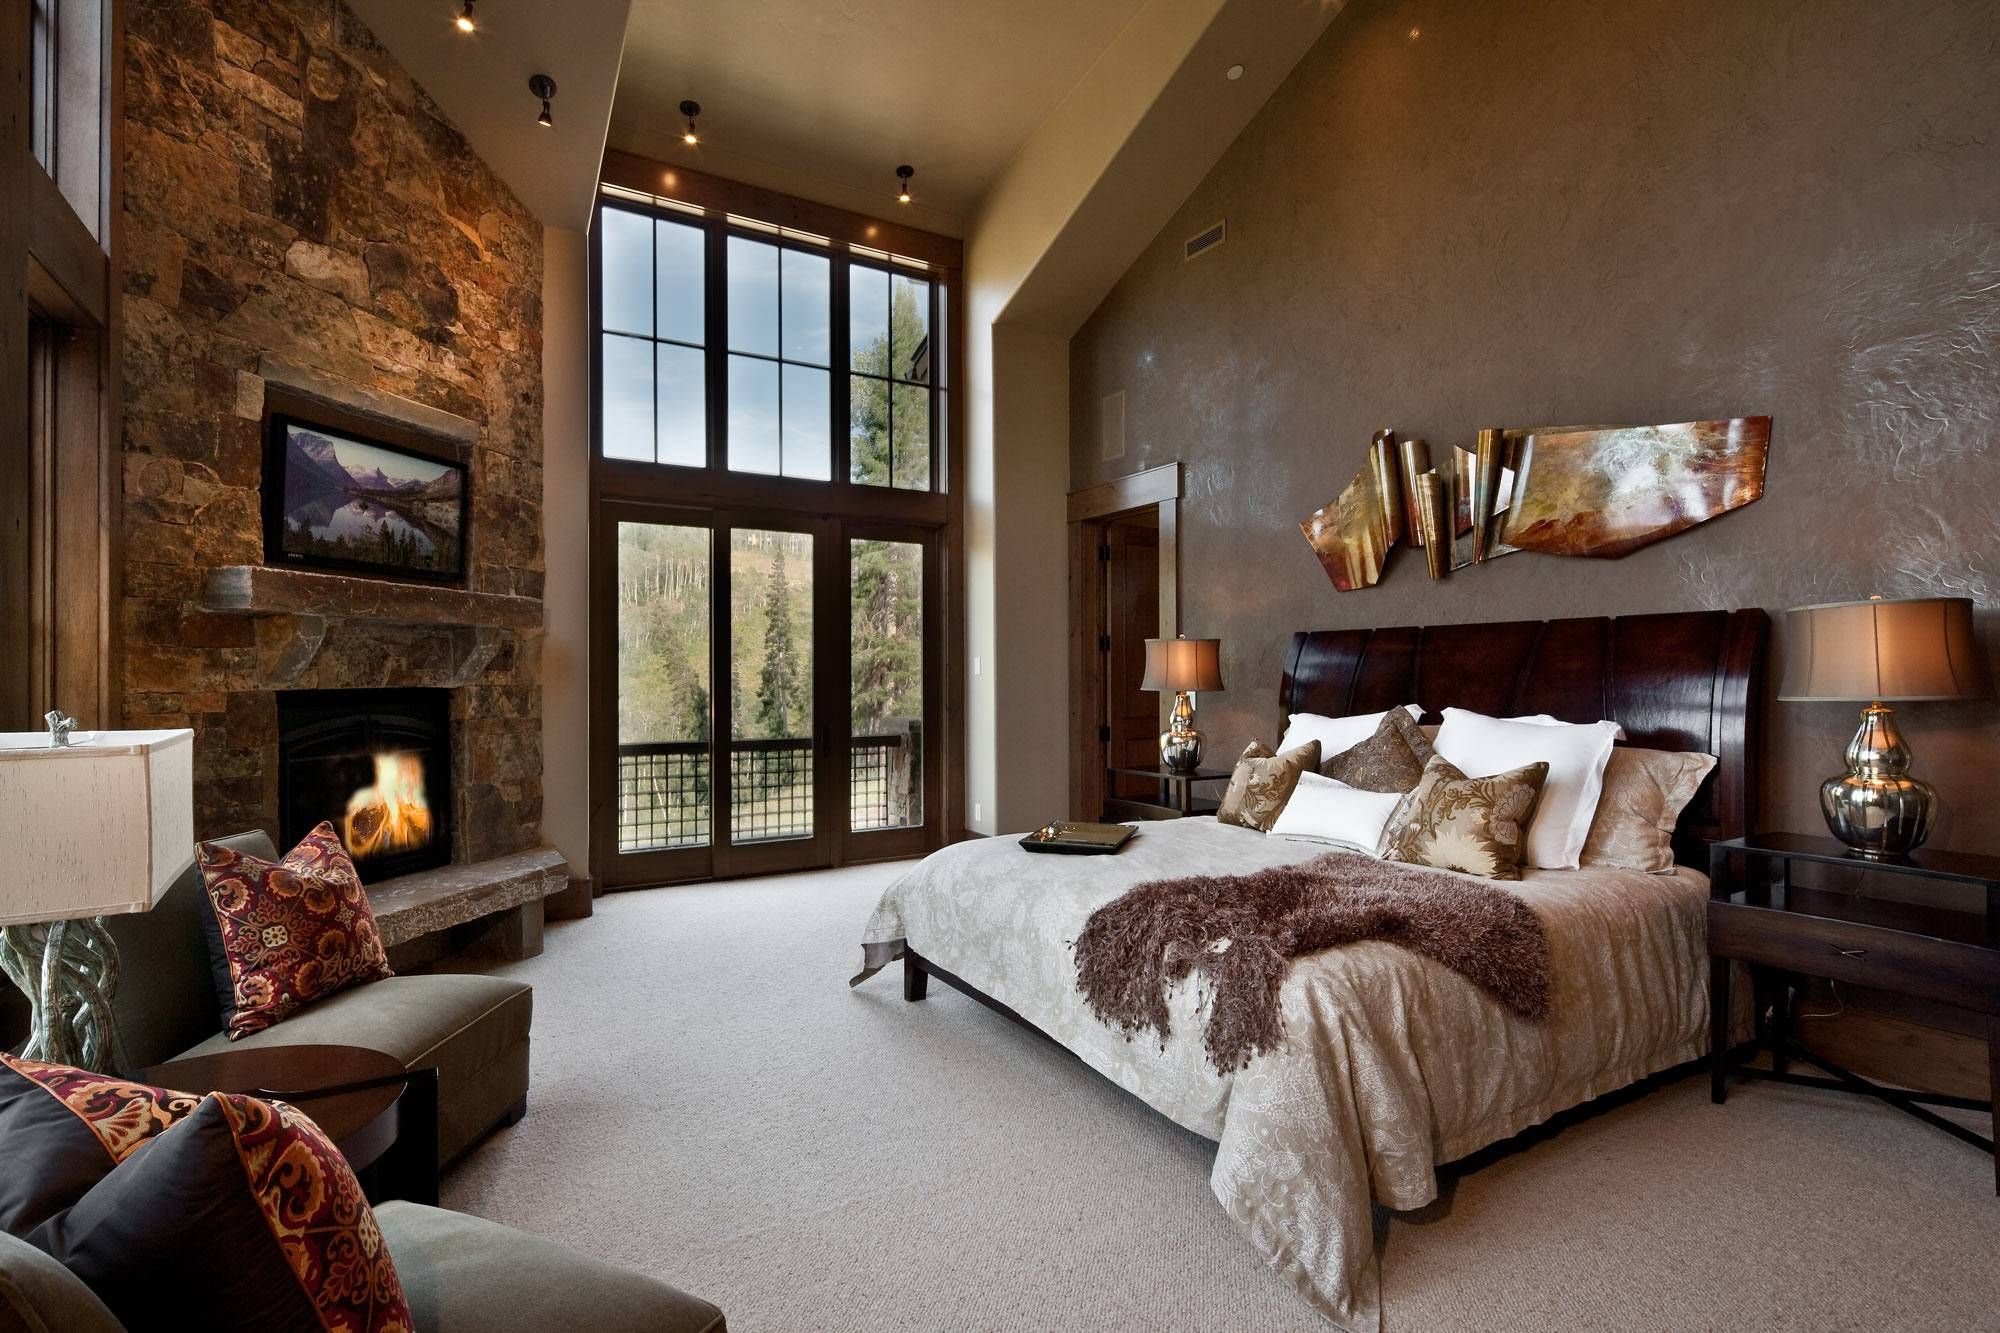 Dream bedroom for certain with captivating views of Park City. www